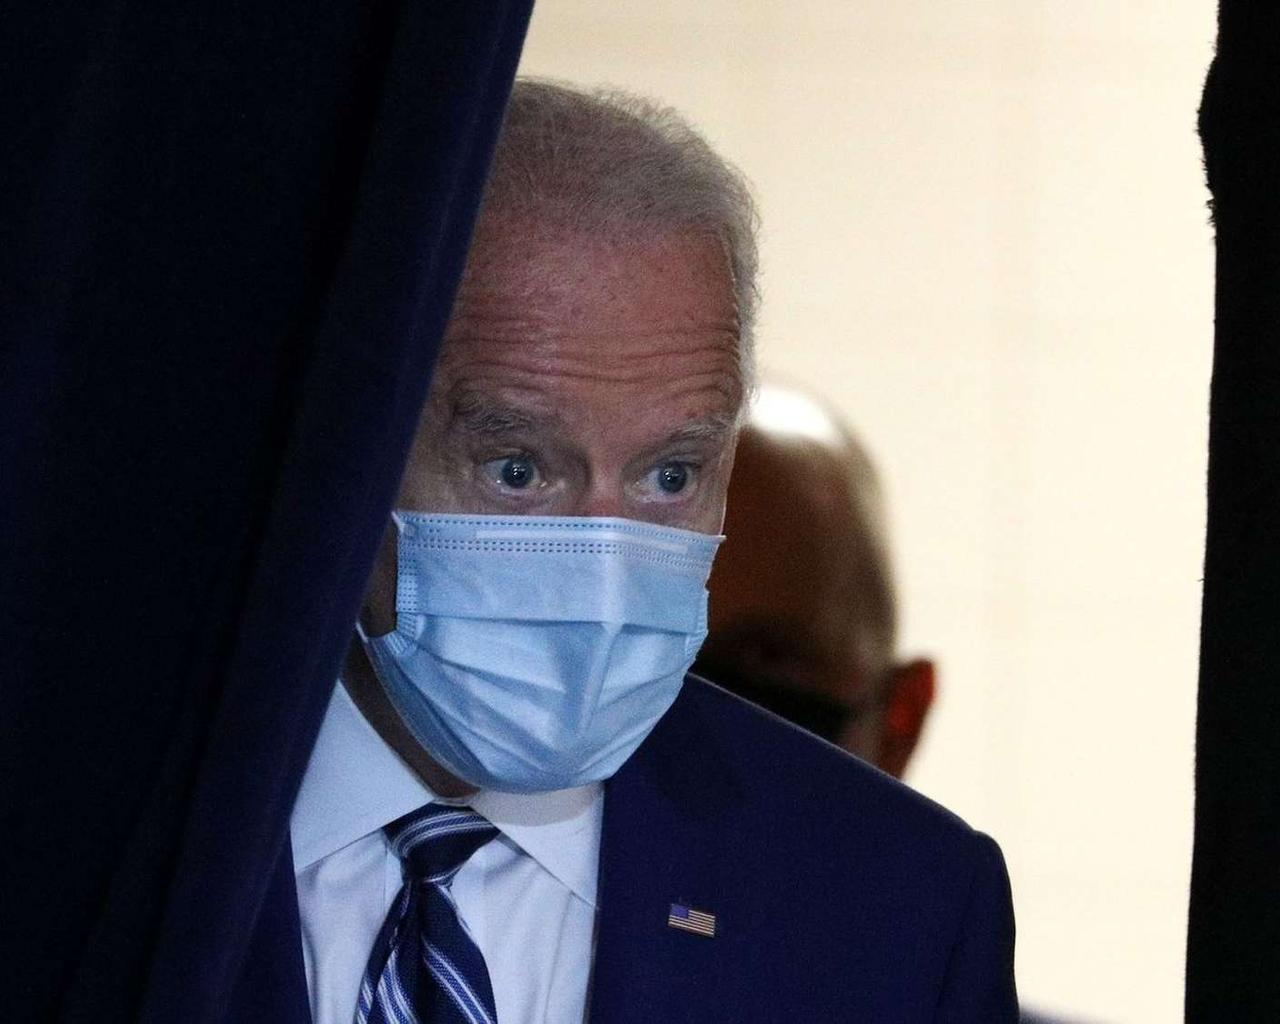 The Secret Service is trying to cover up the incident involving Hunter Biden's gun – reports